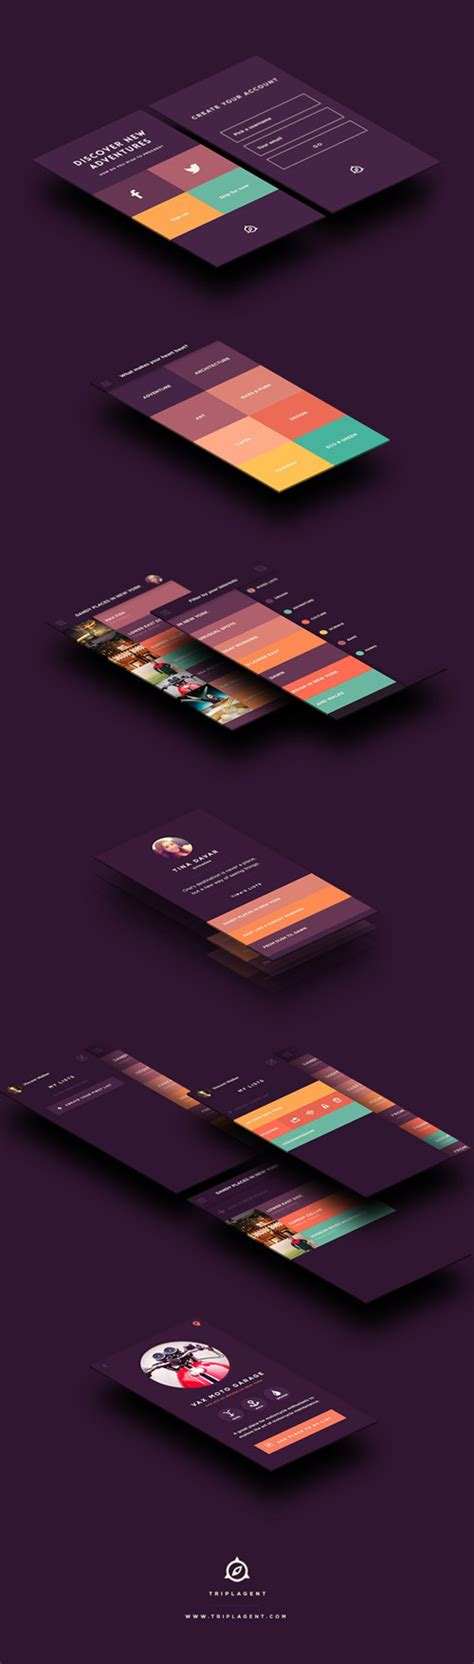 flat mobile flat mobile ui design with remarkable user experience